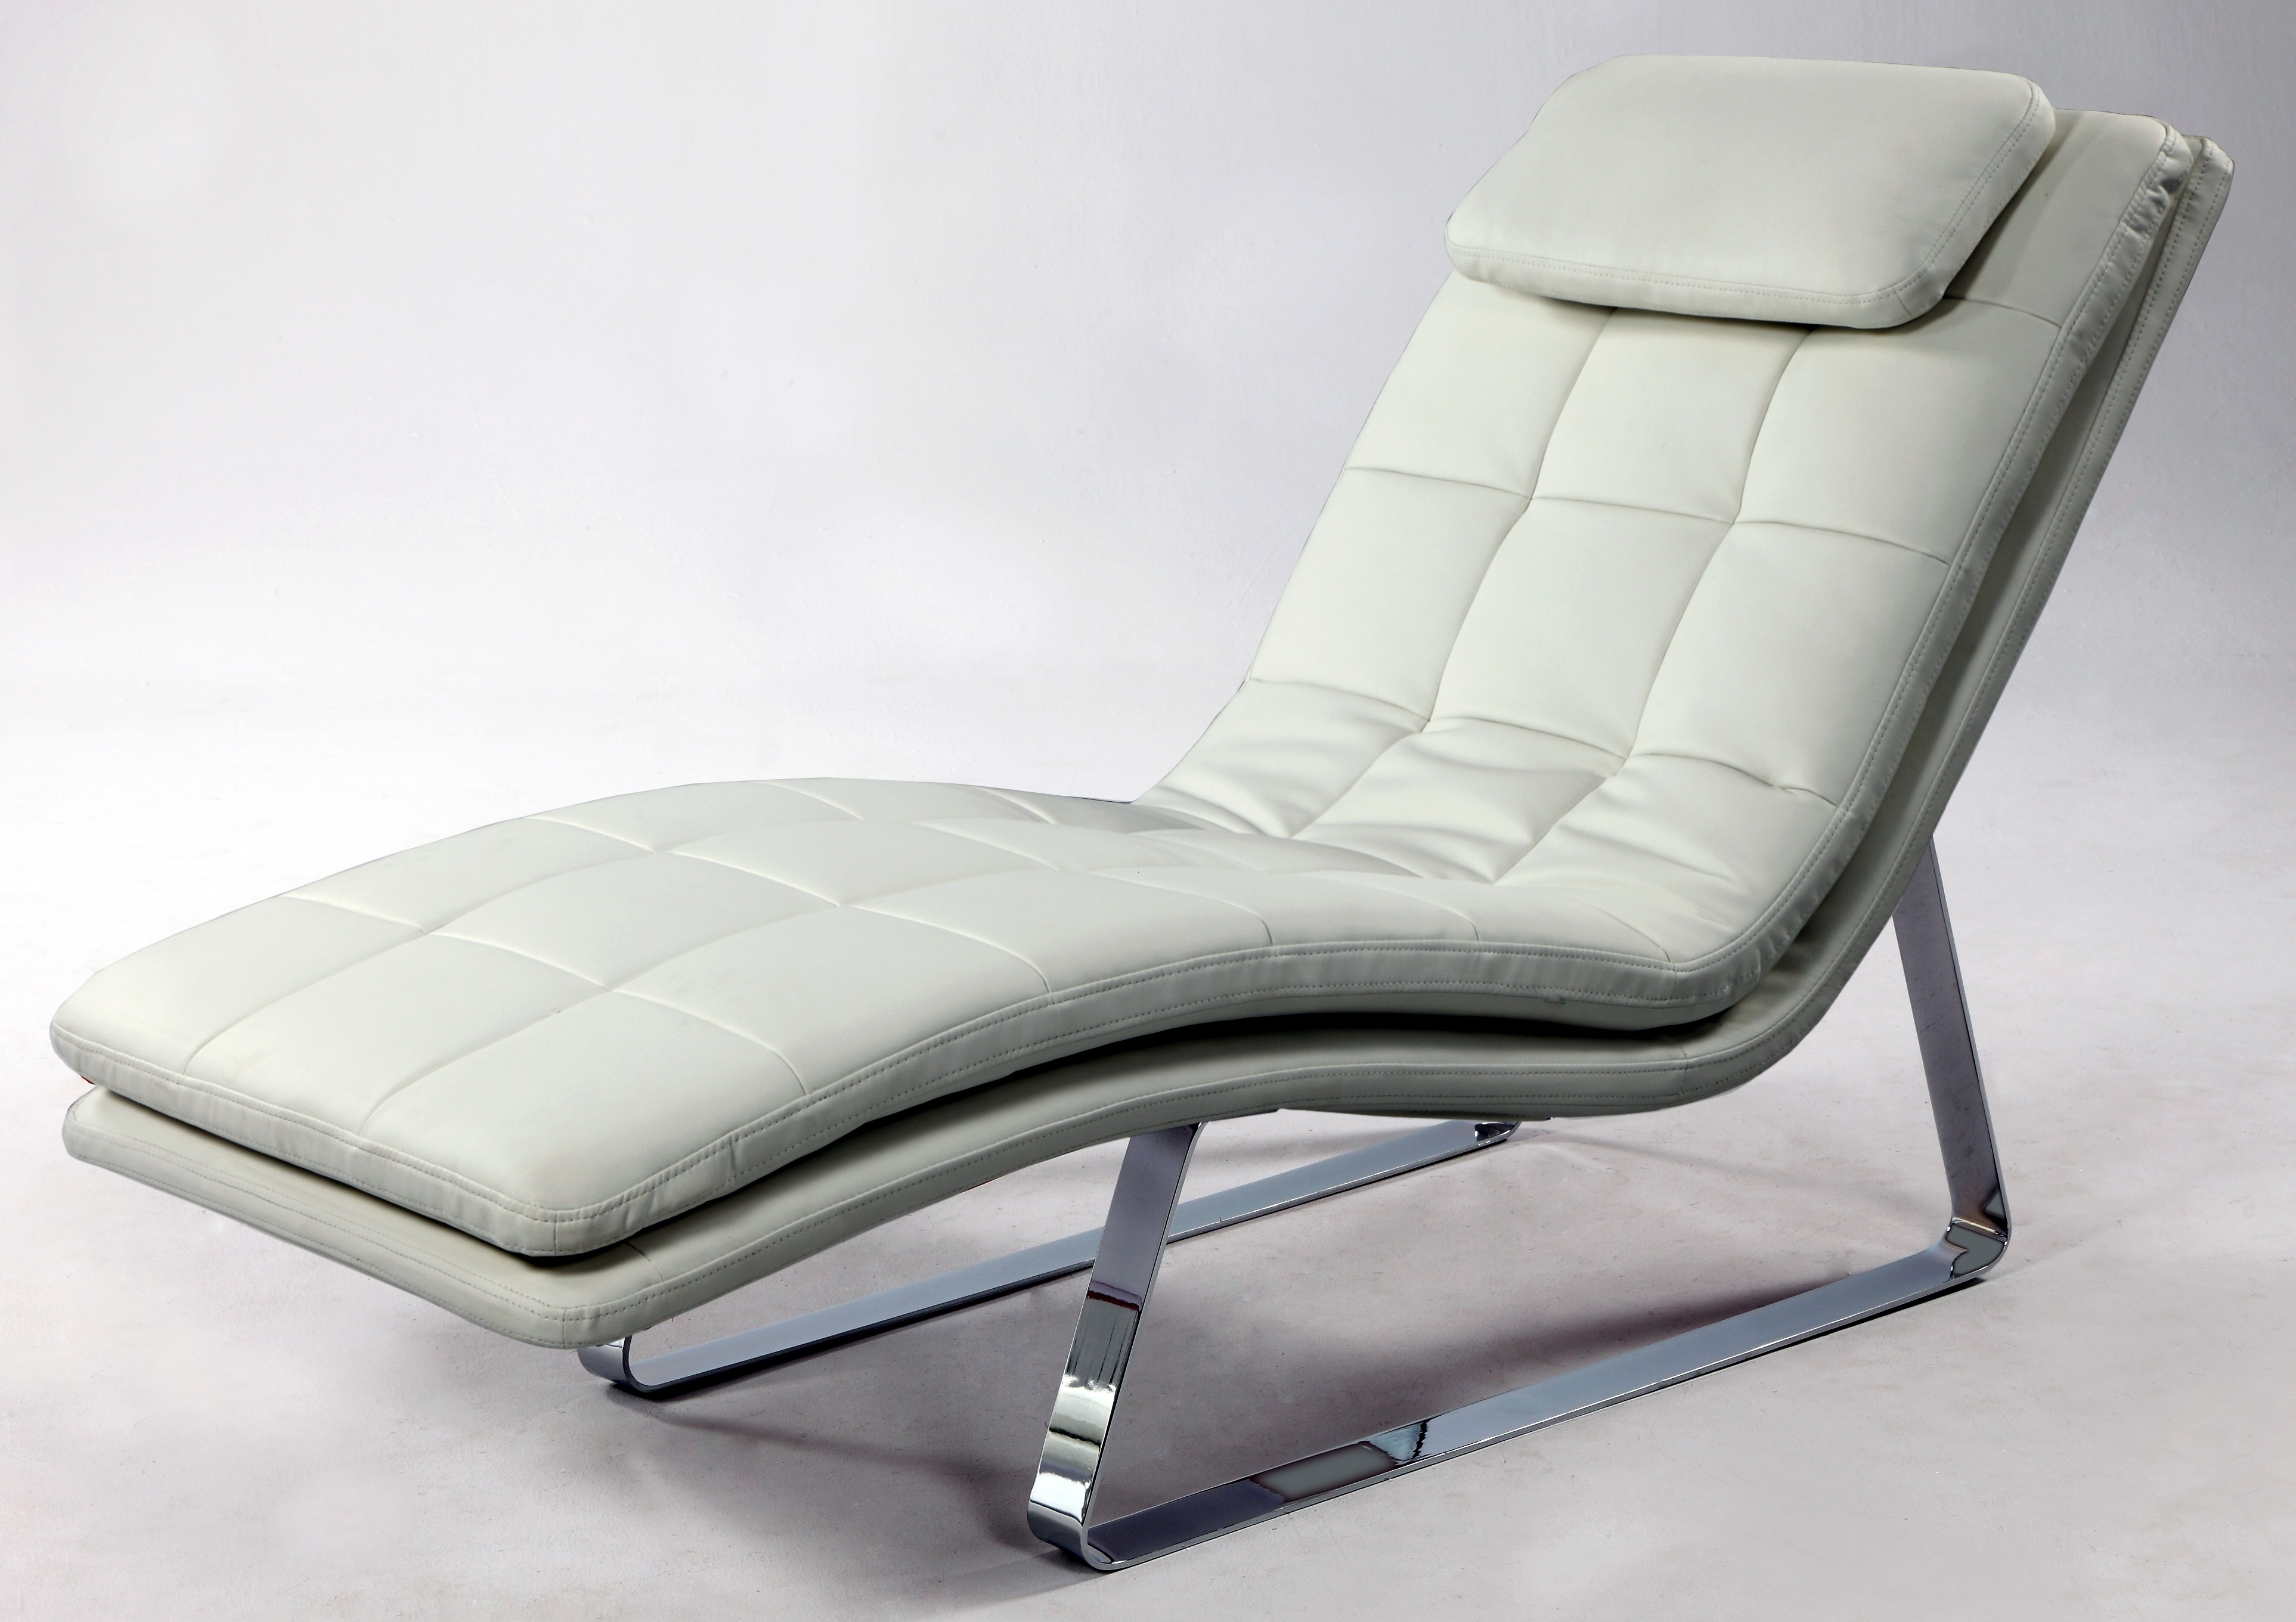 High Quality Chaise Lounge Chairs With Regard To Recent Full Bonded Leather Tufted Chaise Lounge With Chrome Legs New York (View 10 of 15)